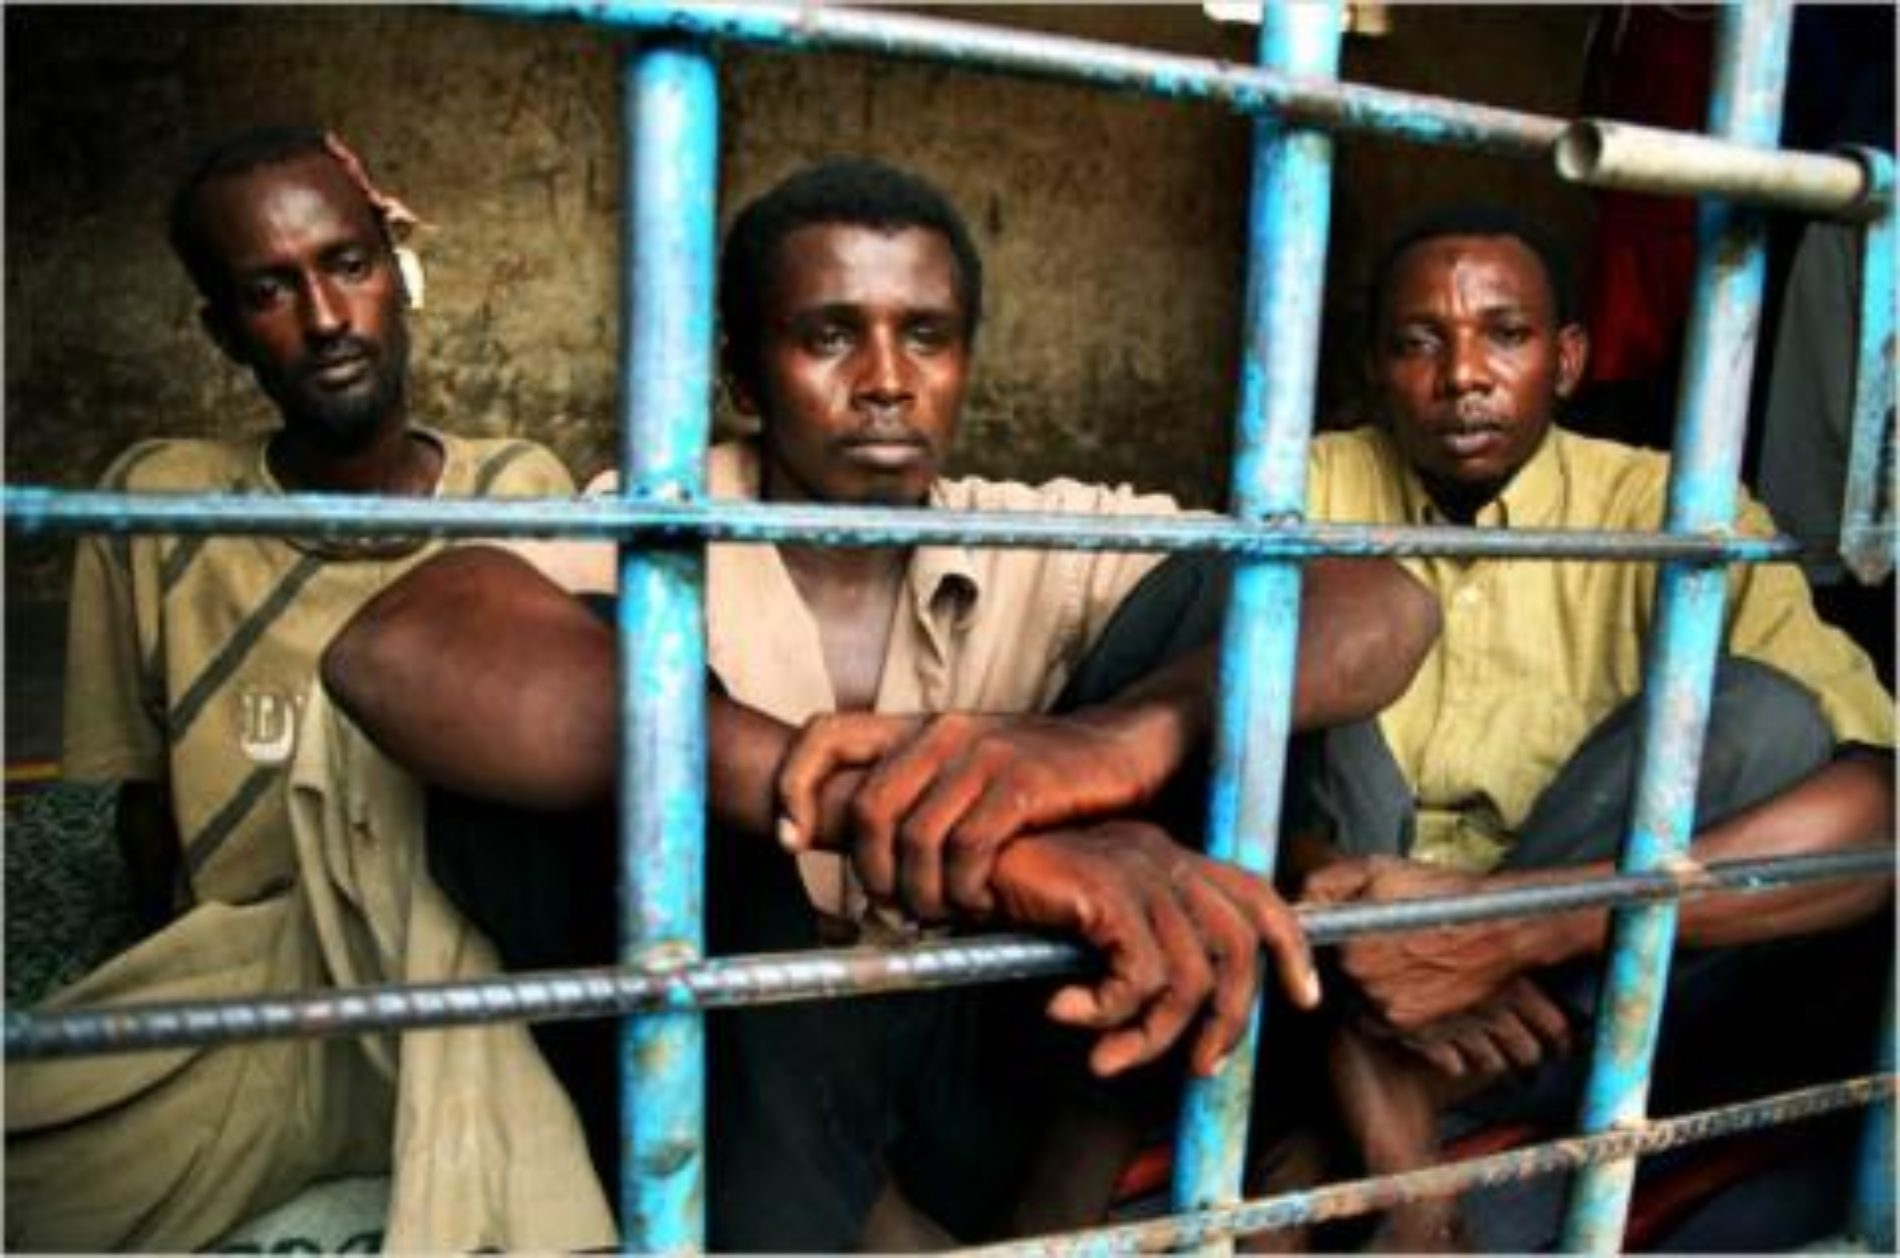 About The Gay Men Who Were Reportedly Arrested In Lagos